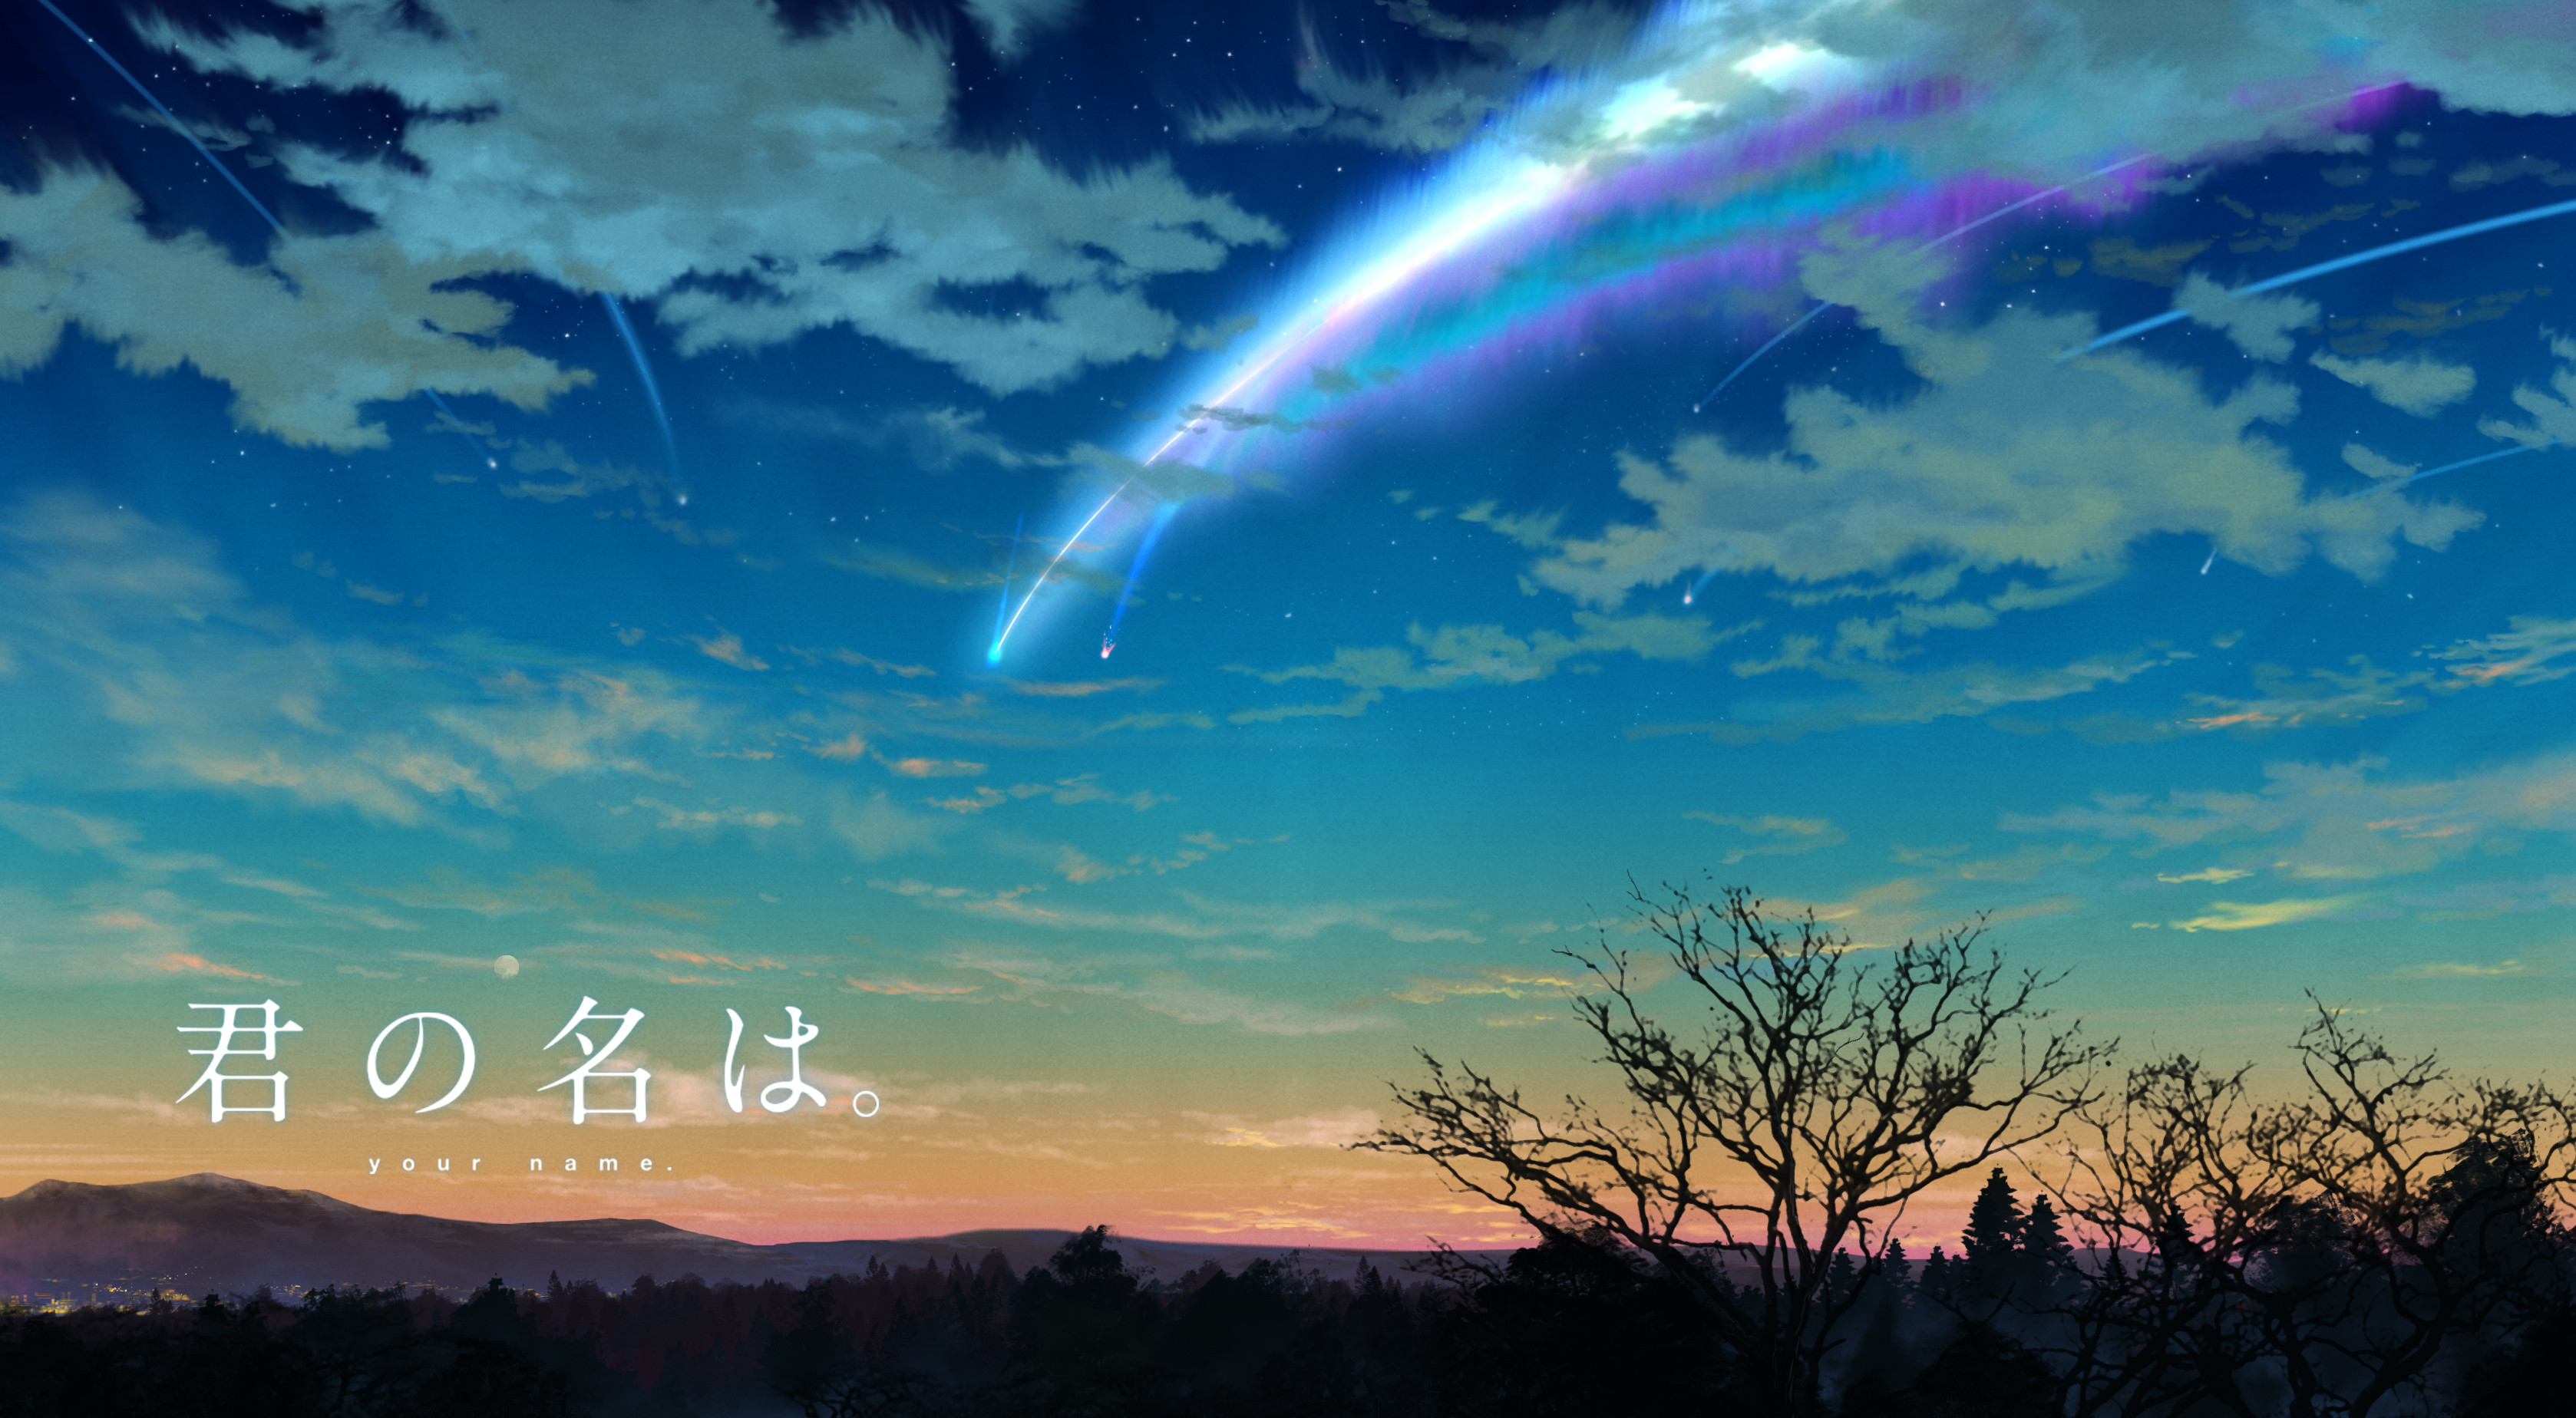 Hd 4k Anime Your Name Wallpapers Wallpaper Cave